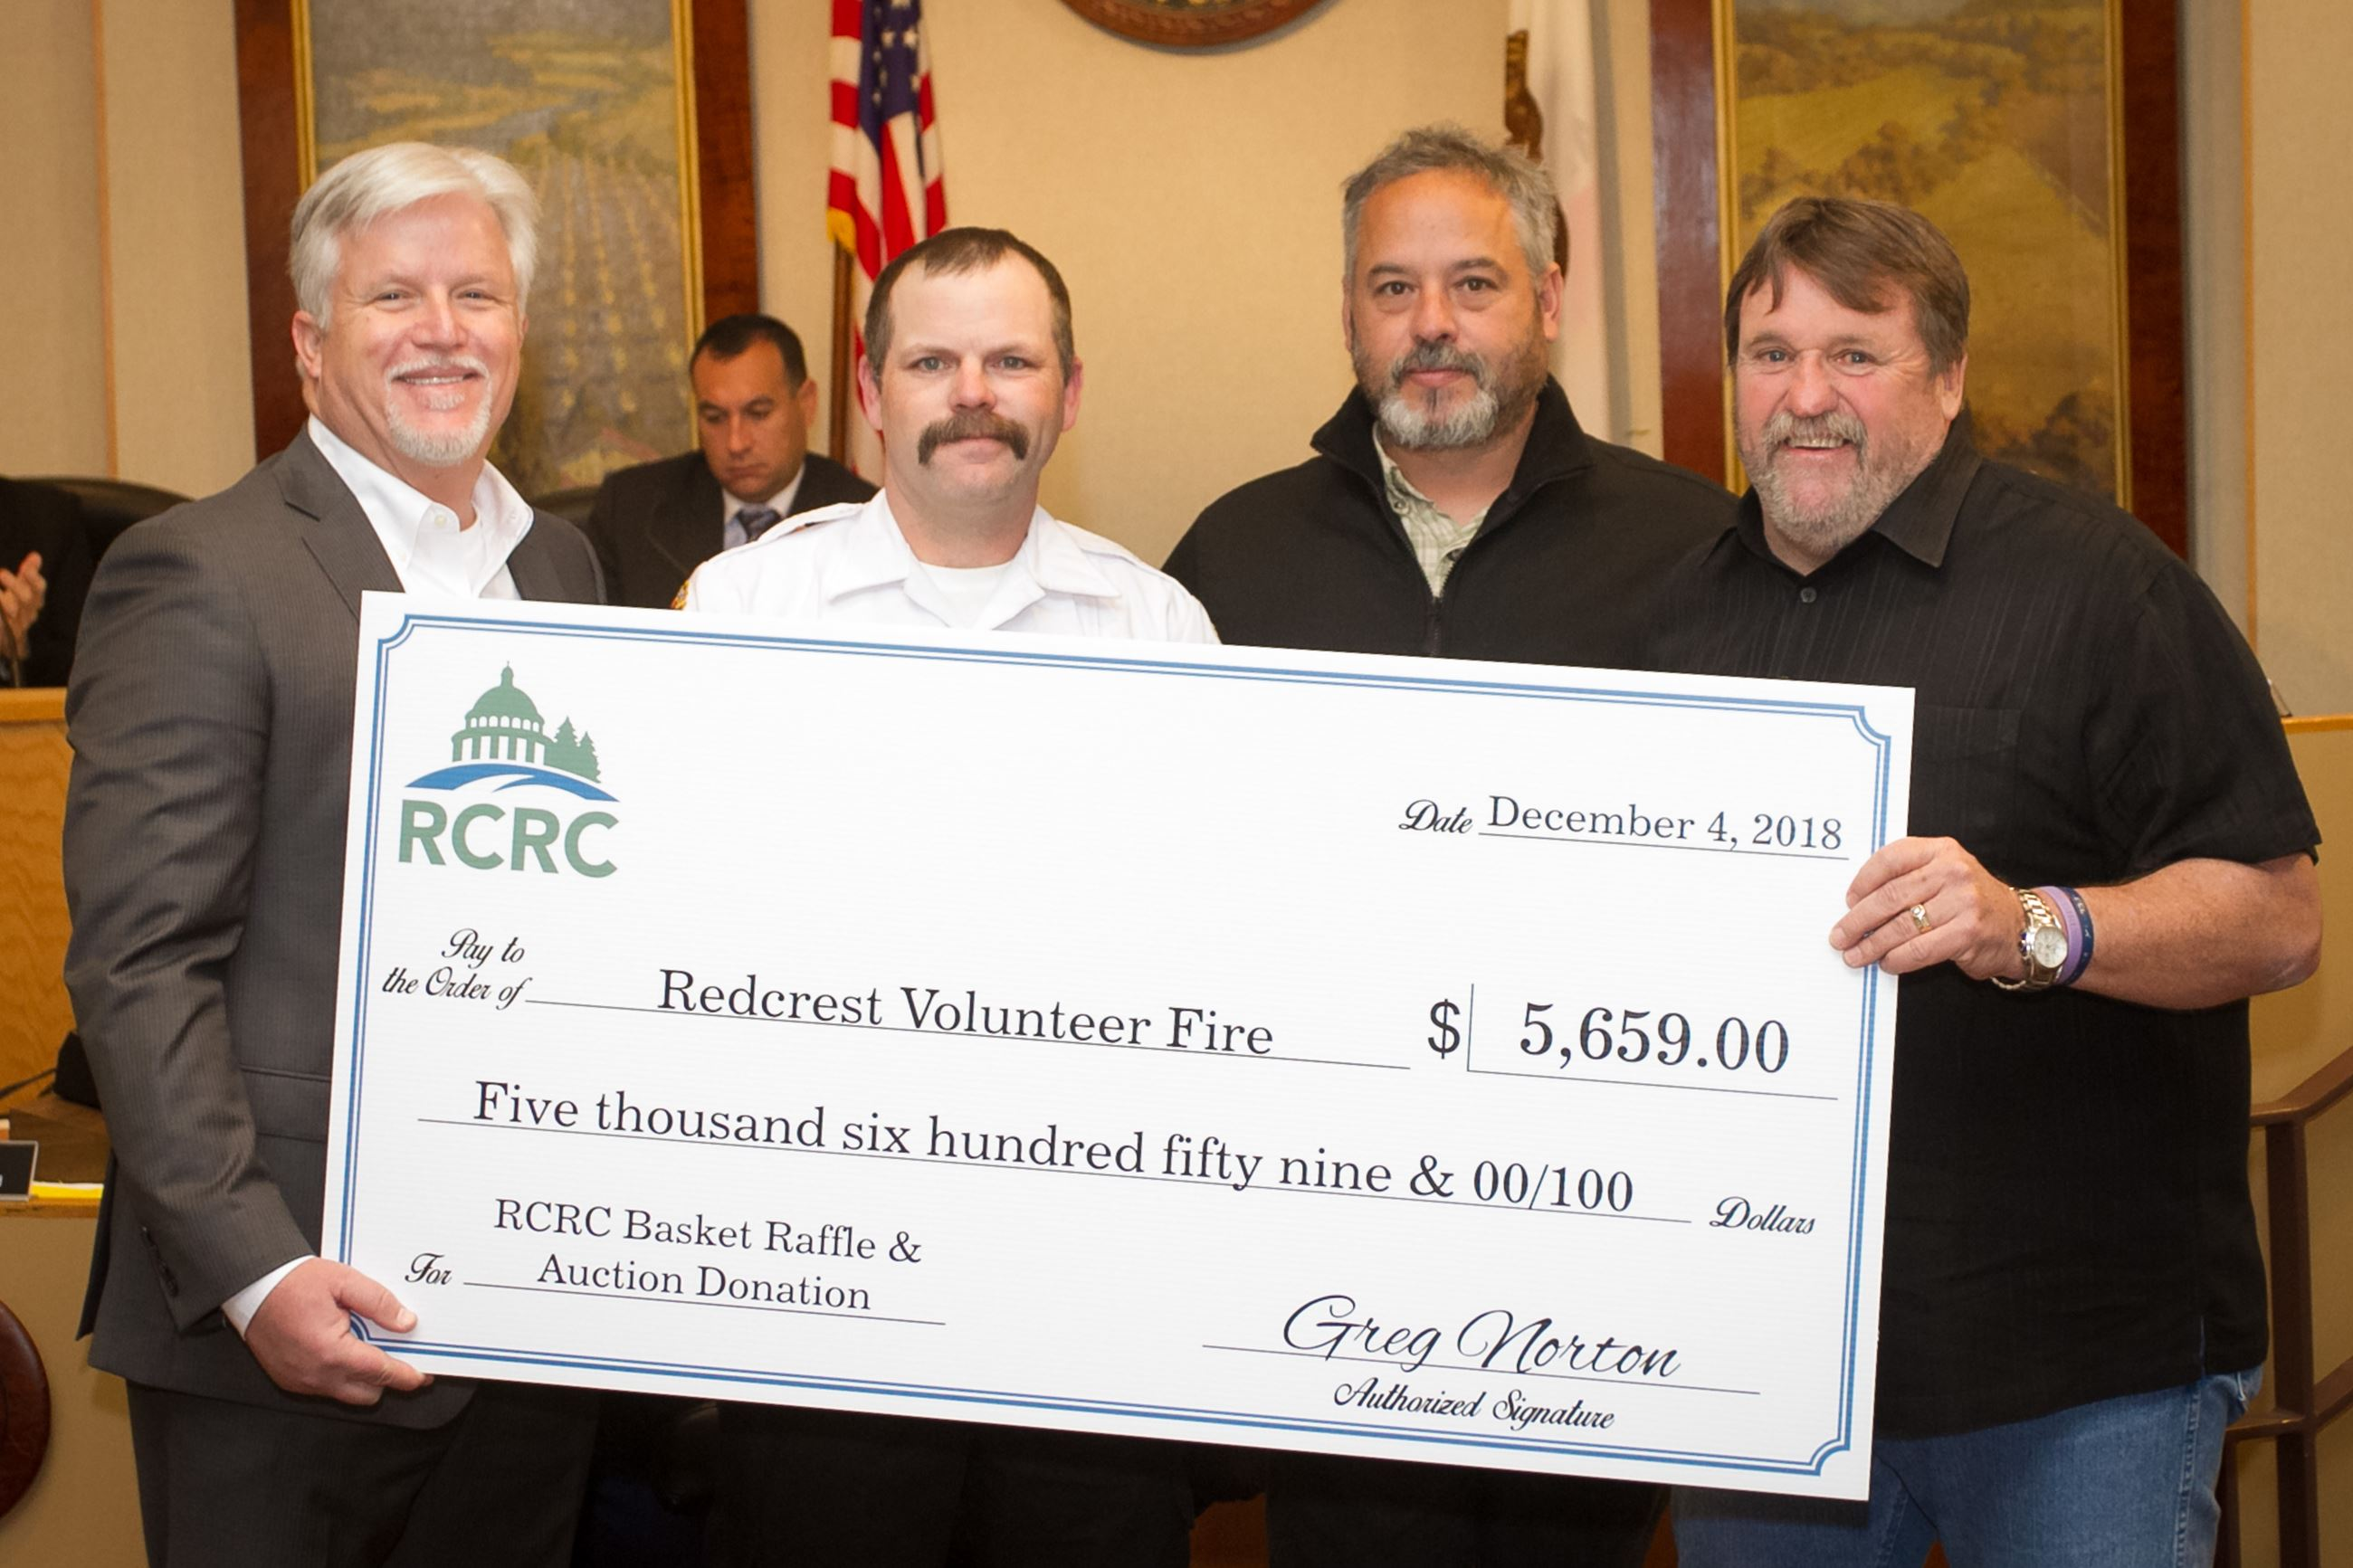 Supervisor Rex Bohn, right, and RCRC Chief Executive Officer Greg Norton, left, present the Redcrest